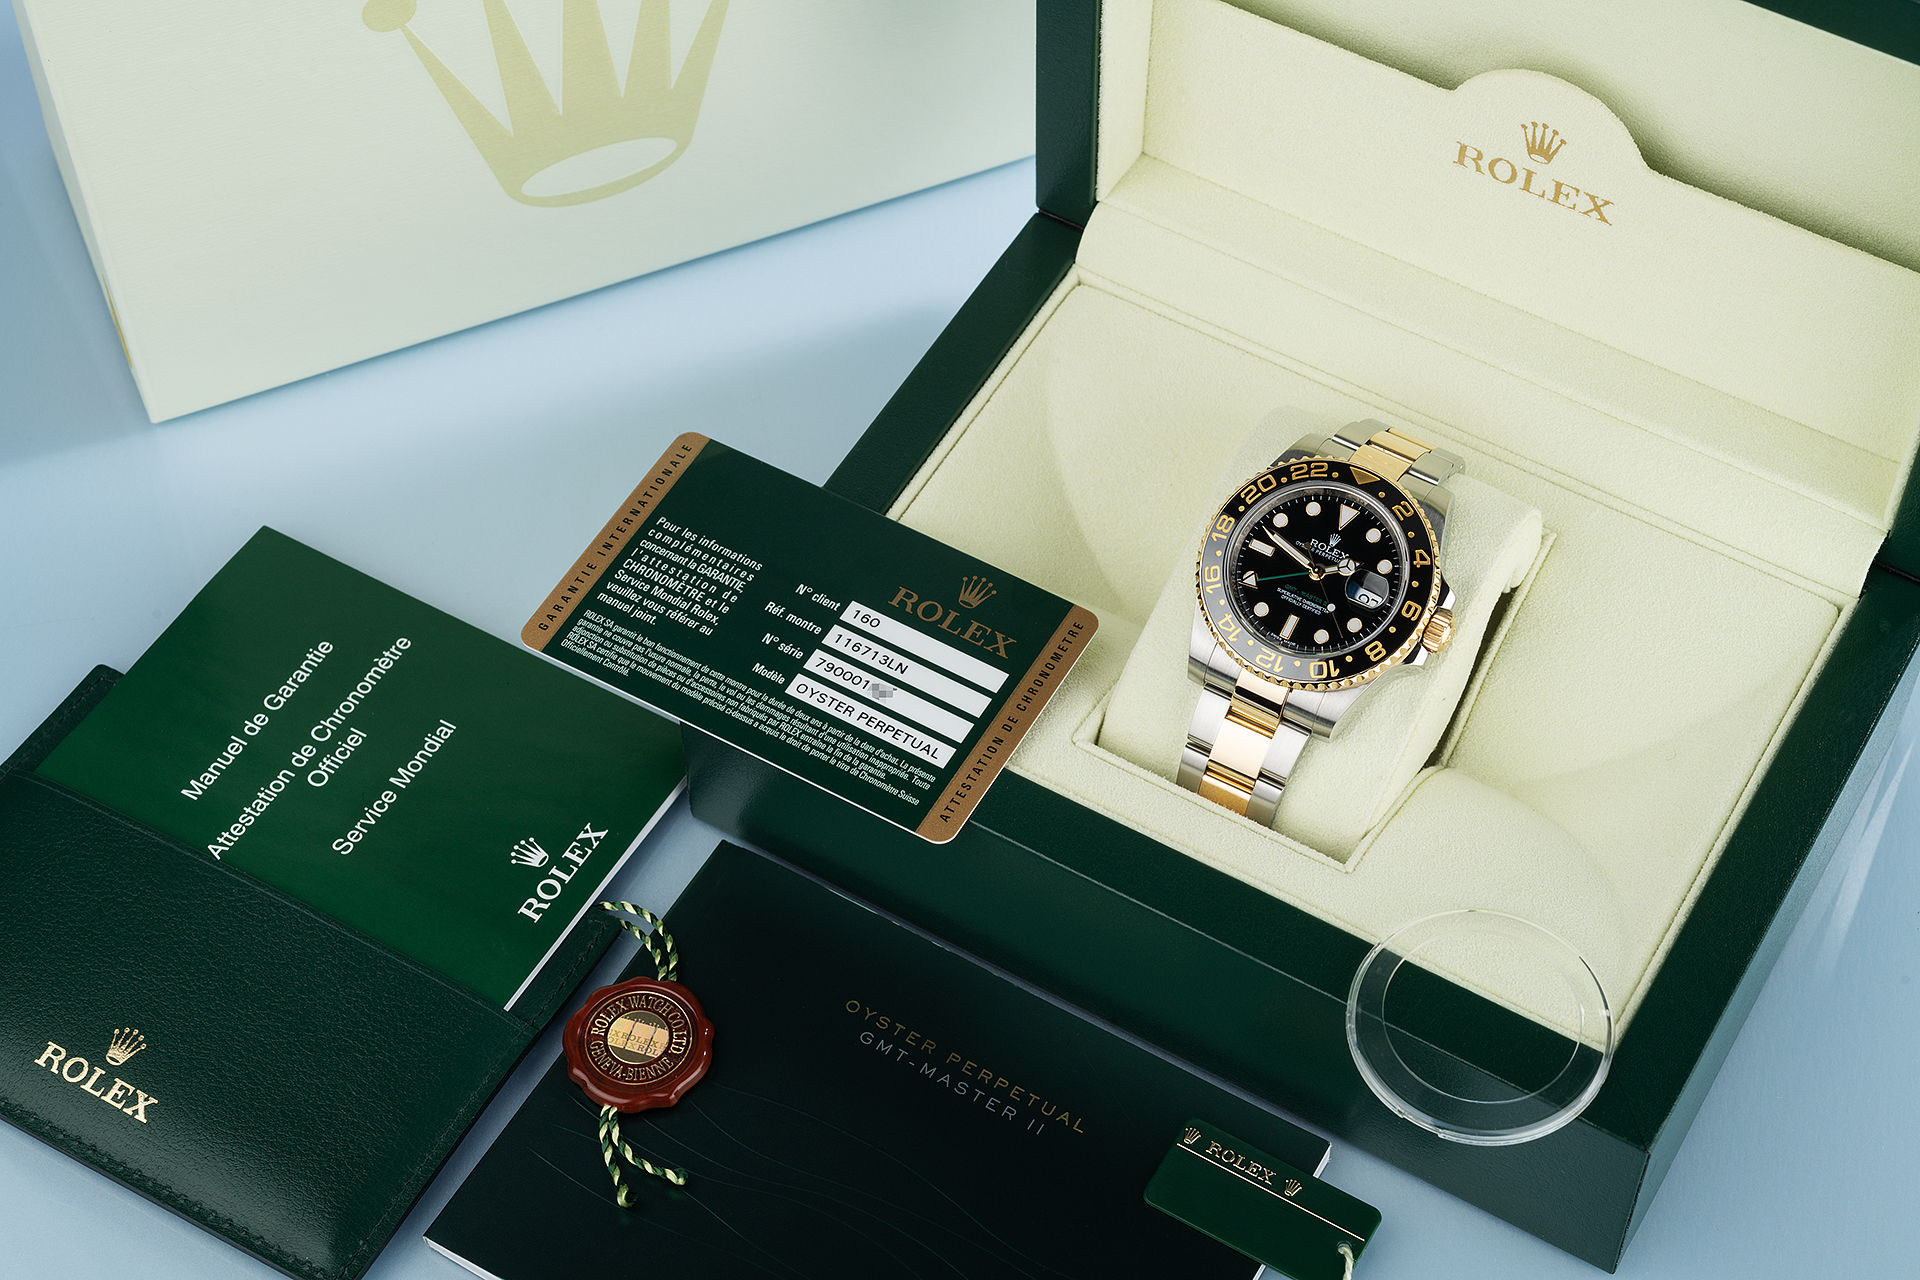 ref 116713LN | 'Complete Set' Triple Time-Zone | Rolex GMT-Master II